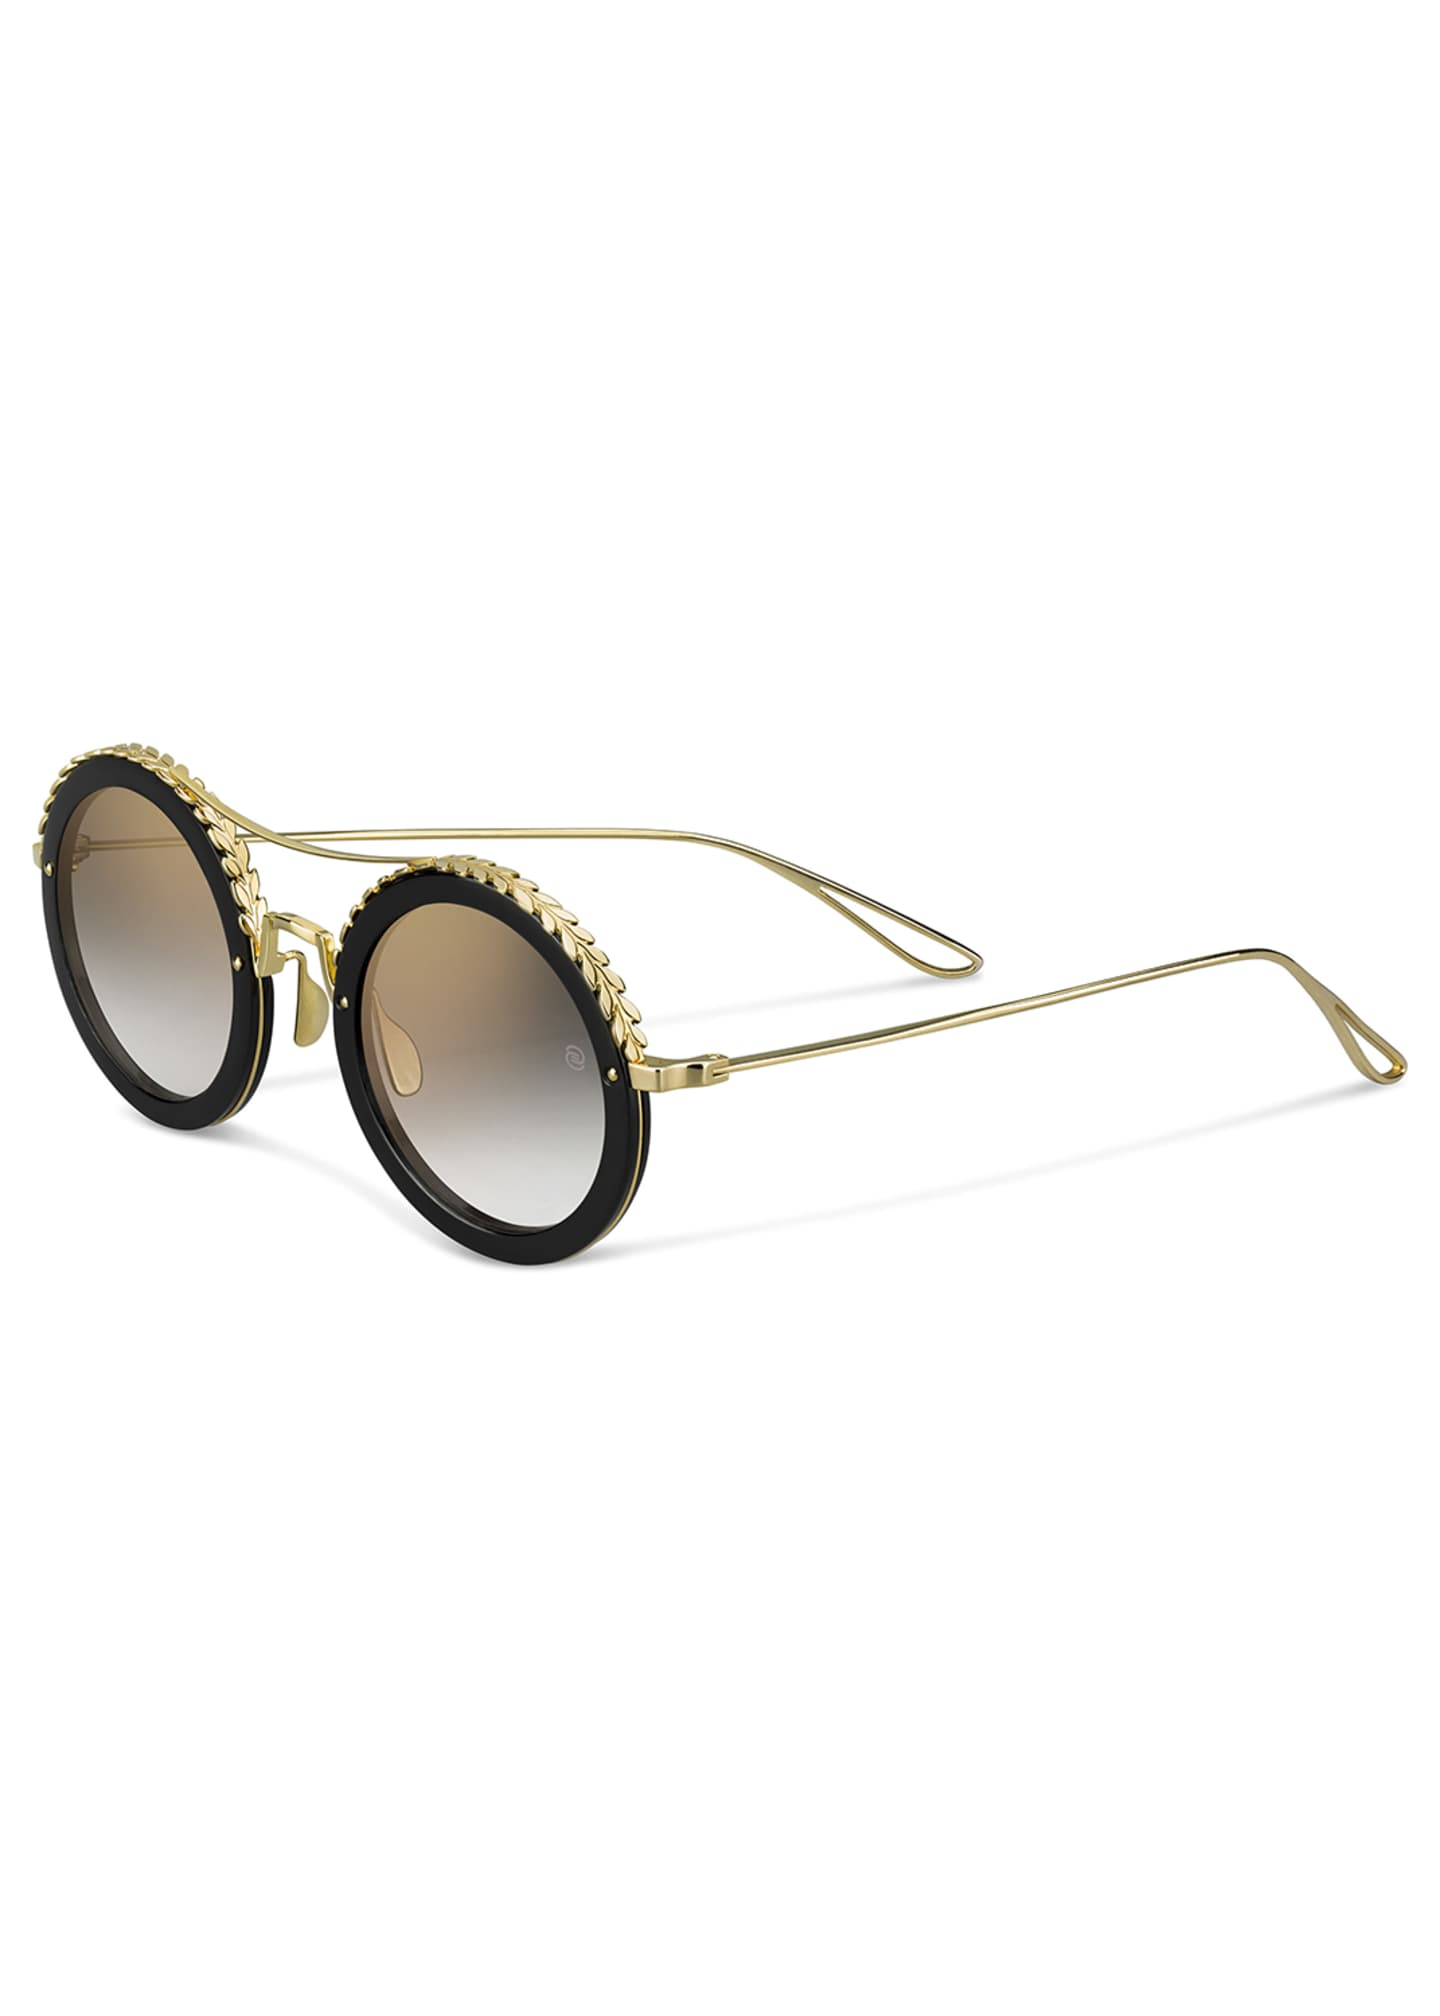 Elie Saab Mirrored Round Metal Sunglasses w/ Leaf